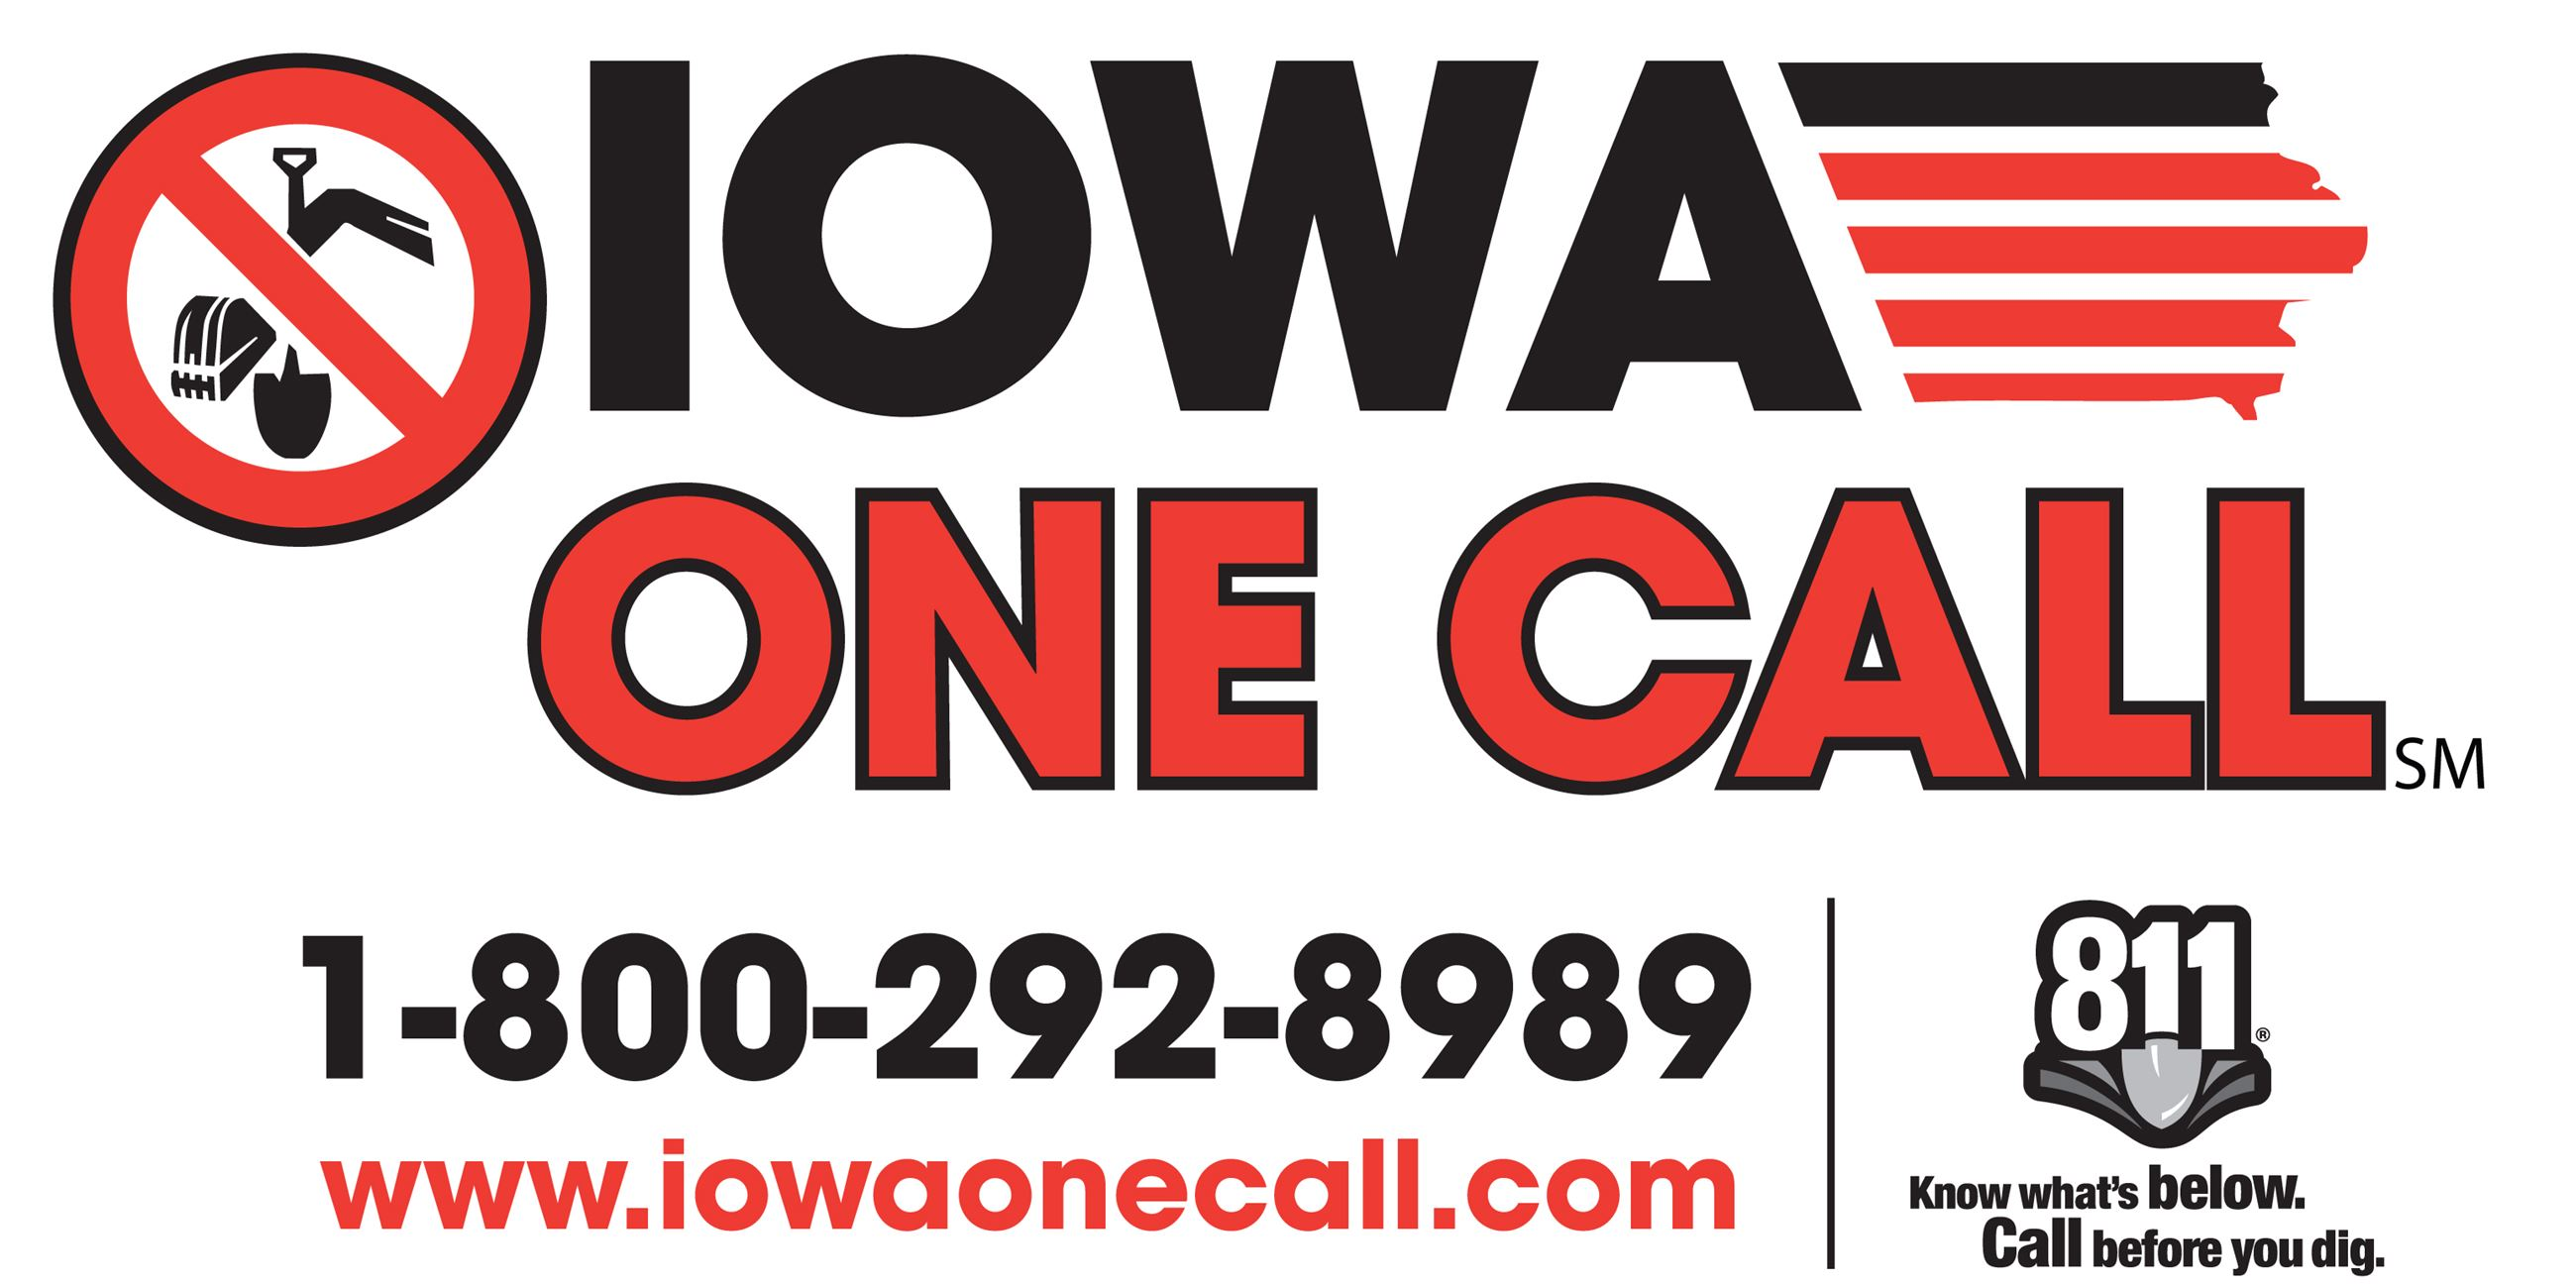 Iowa one call logo